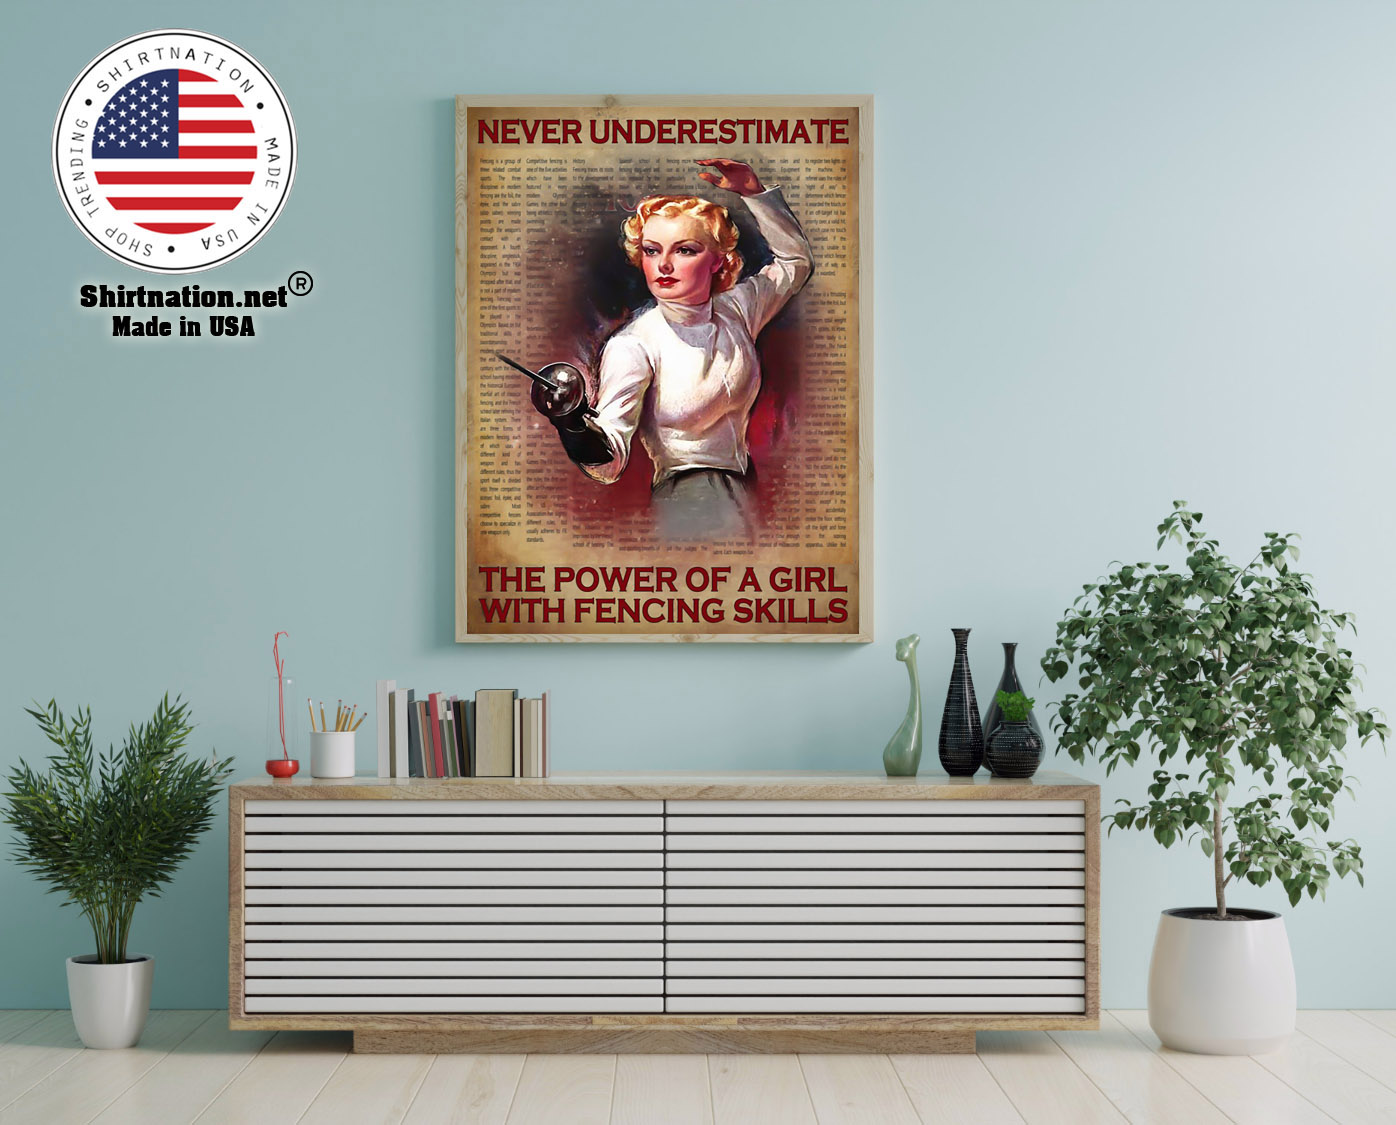 Never underestimate the power of a girl with fencing skills poster 12